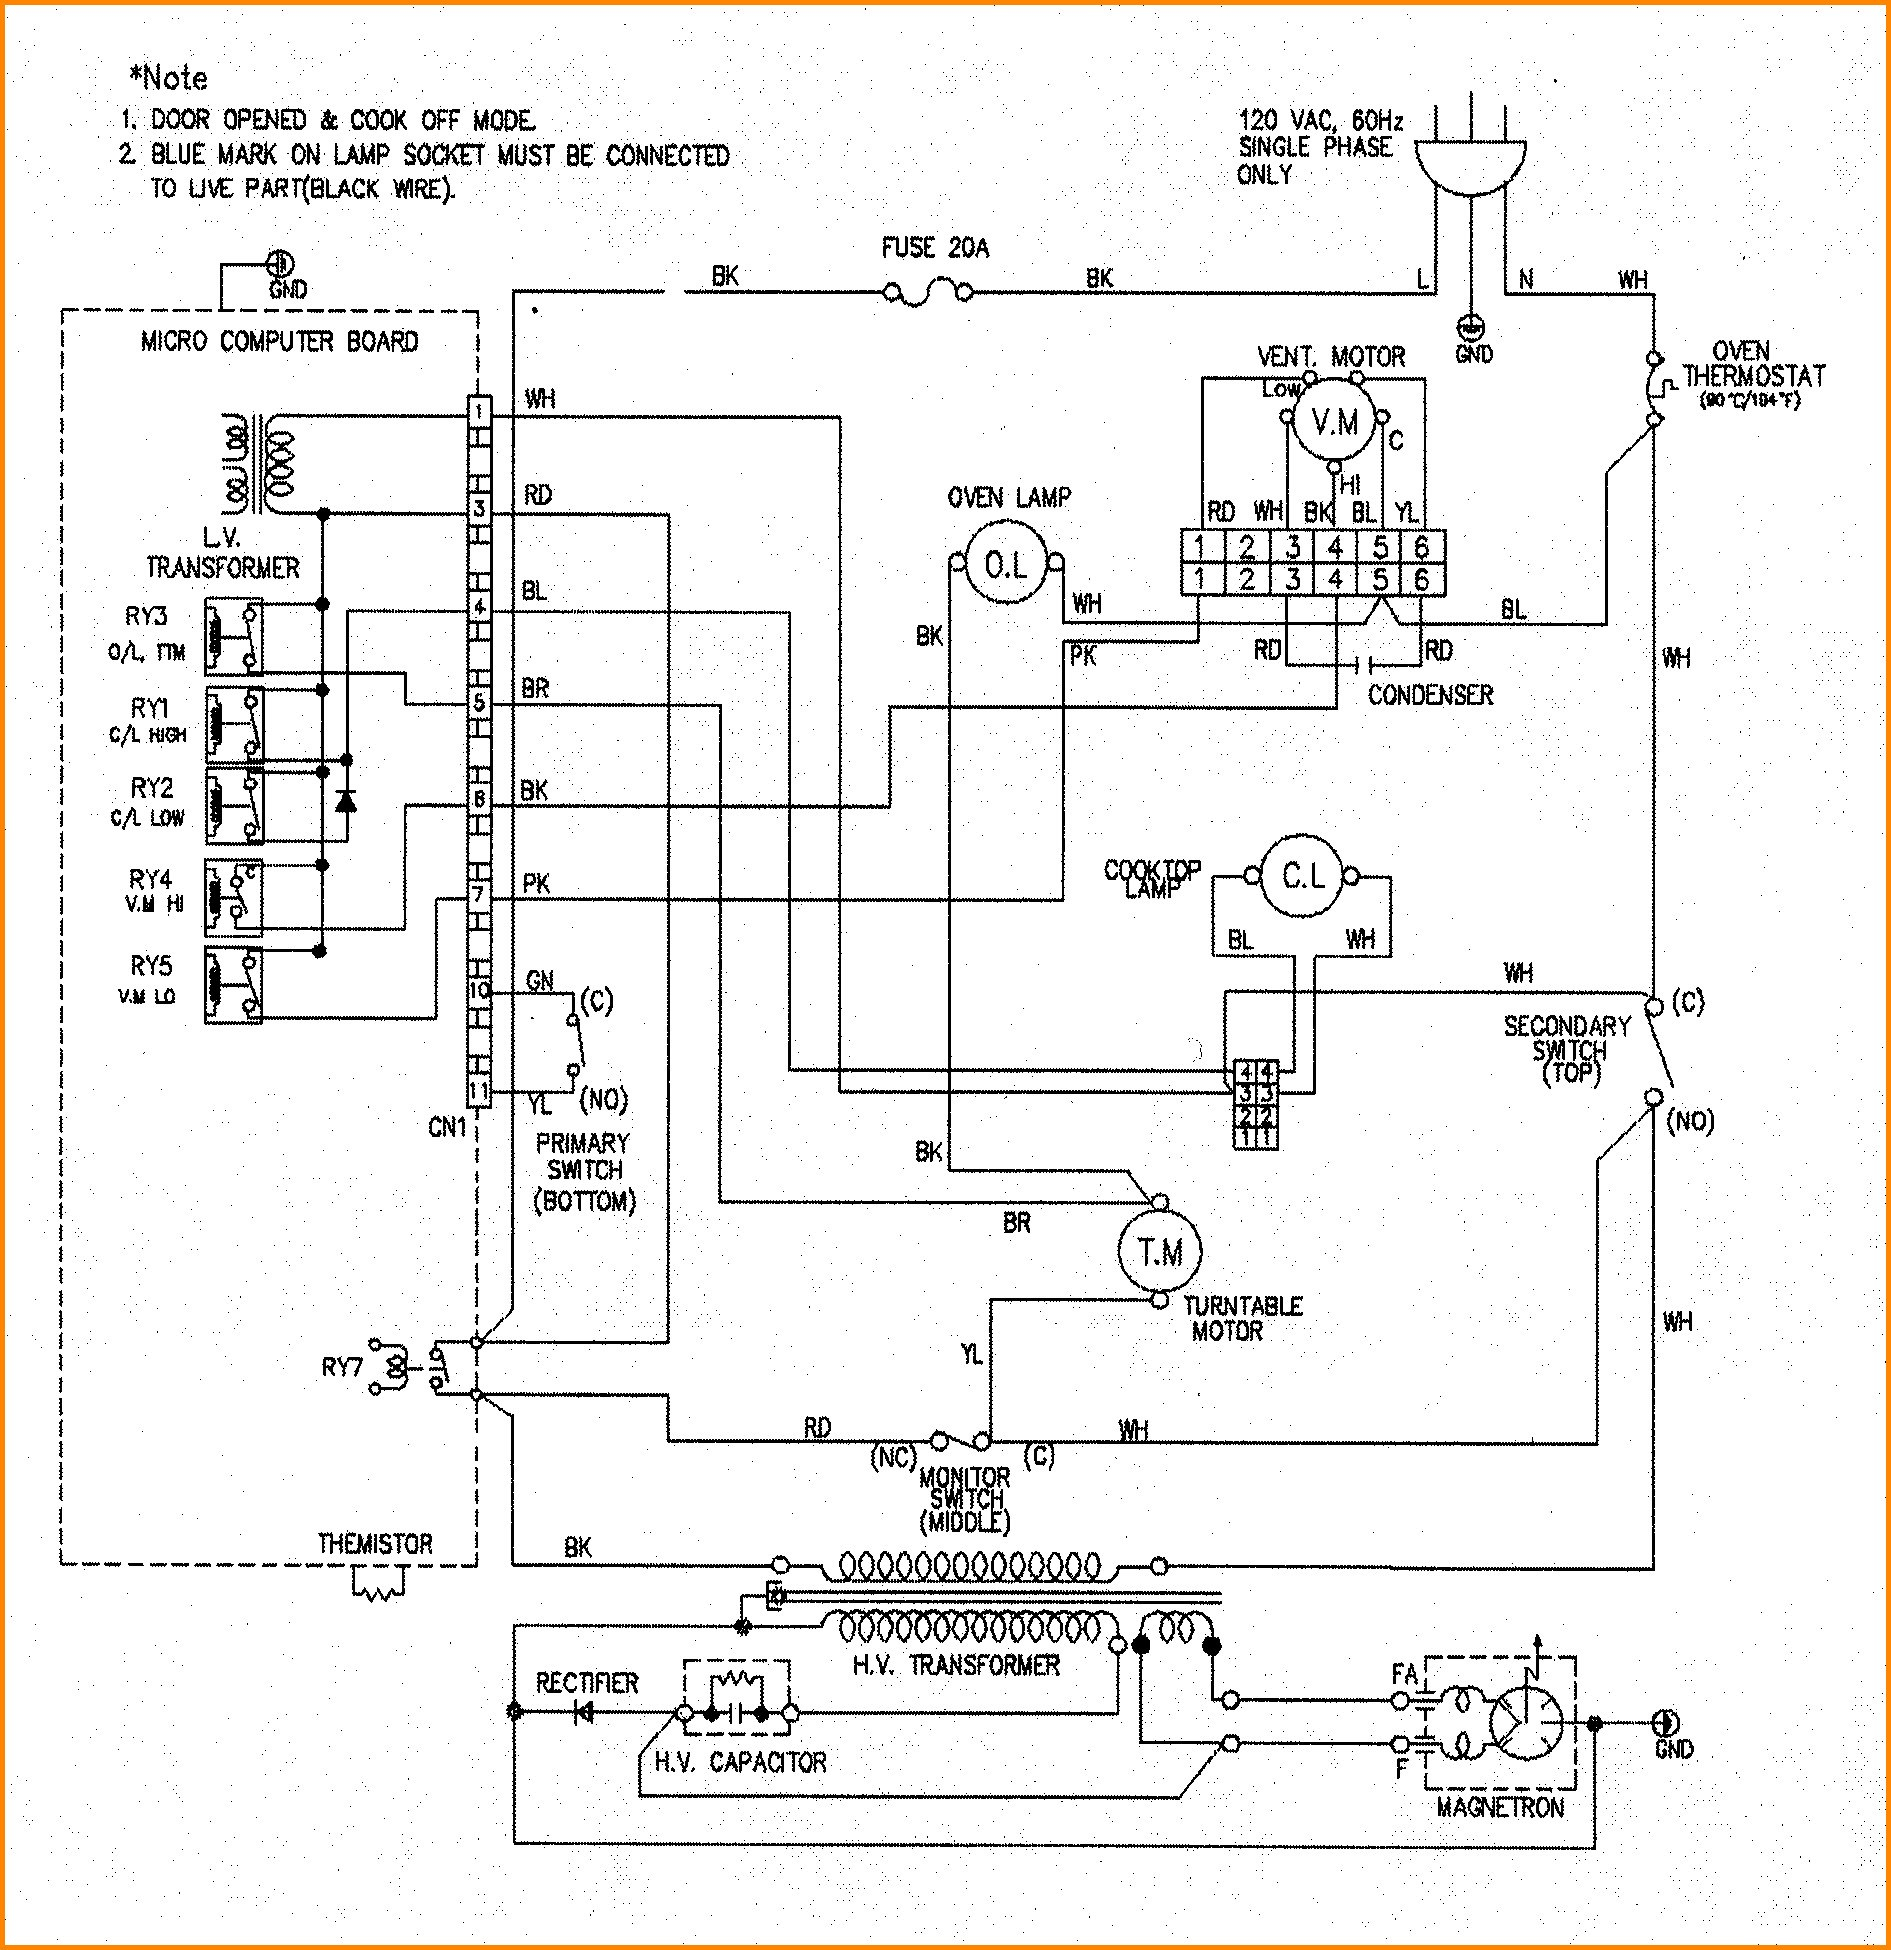 Wiring An Electric Stove Diagram Get Free Image About Schematic For Whirlpool Gx5fhdxvb Oven Thermostat Sample Rh Faceitsalon Com